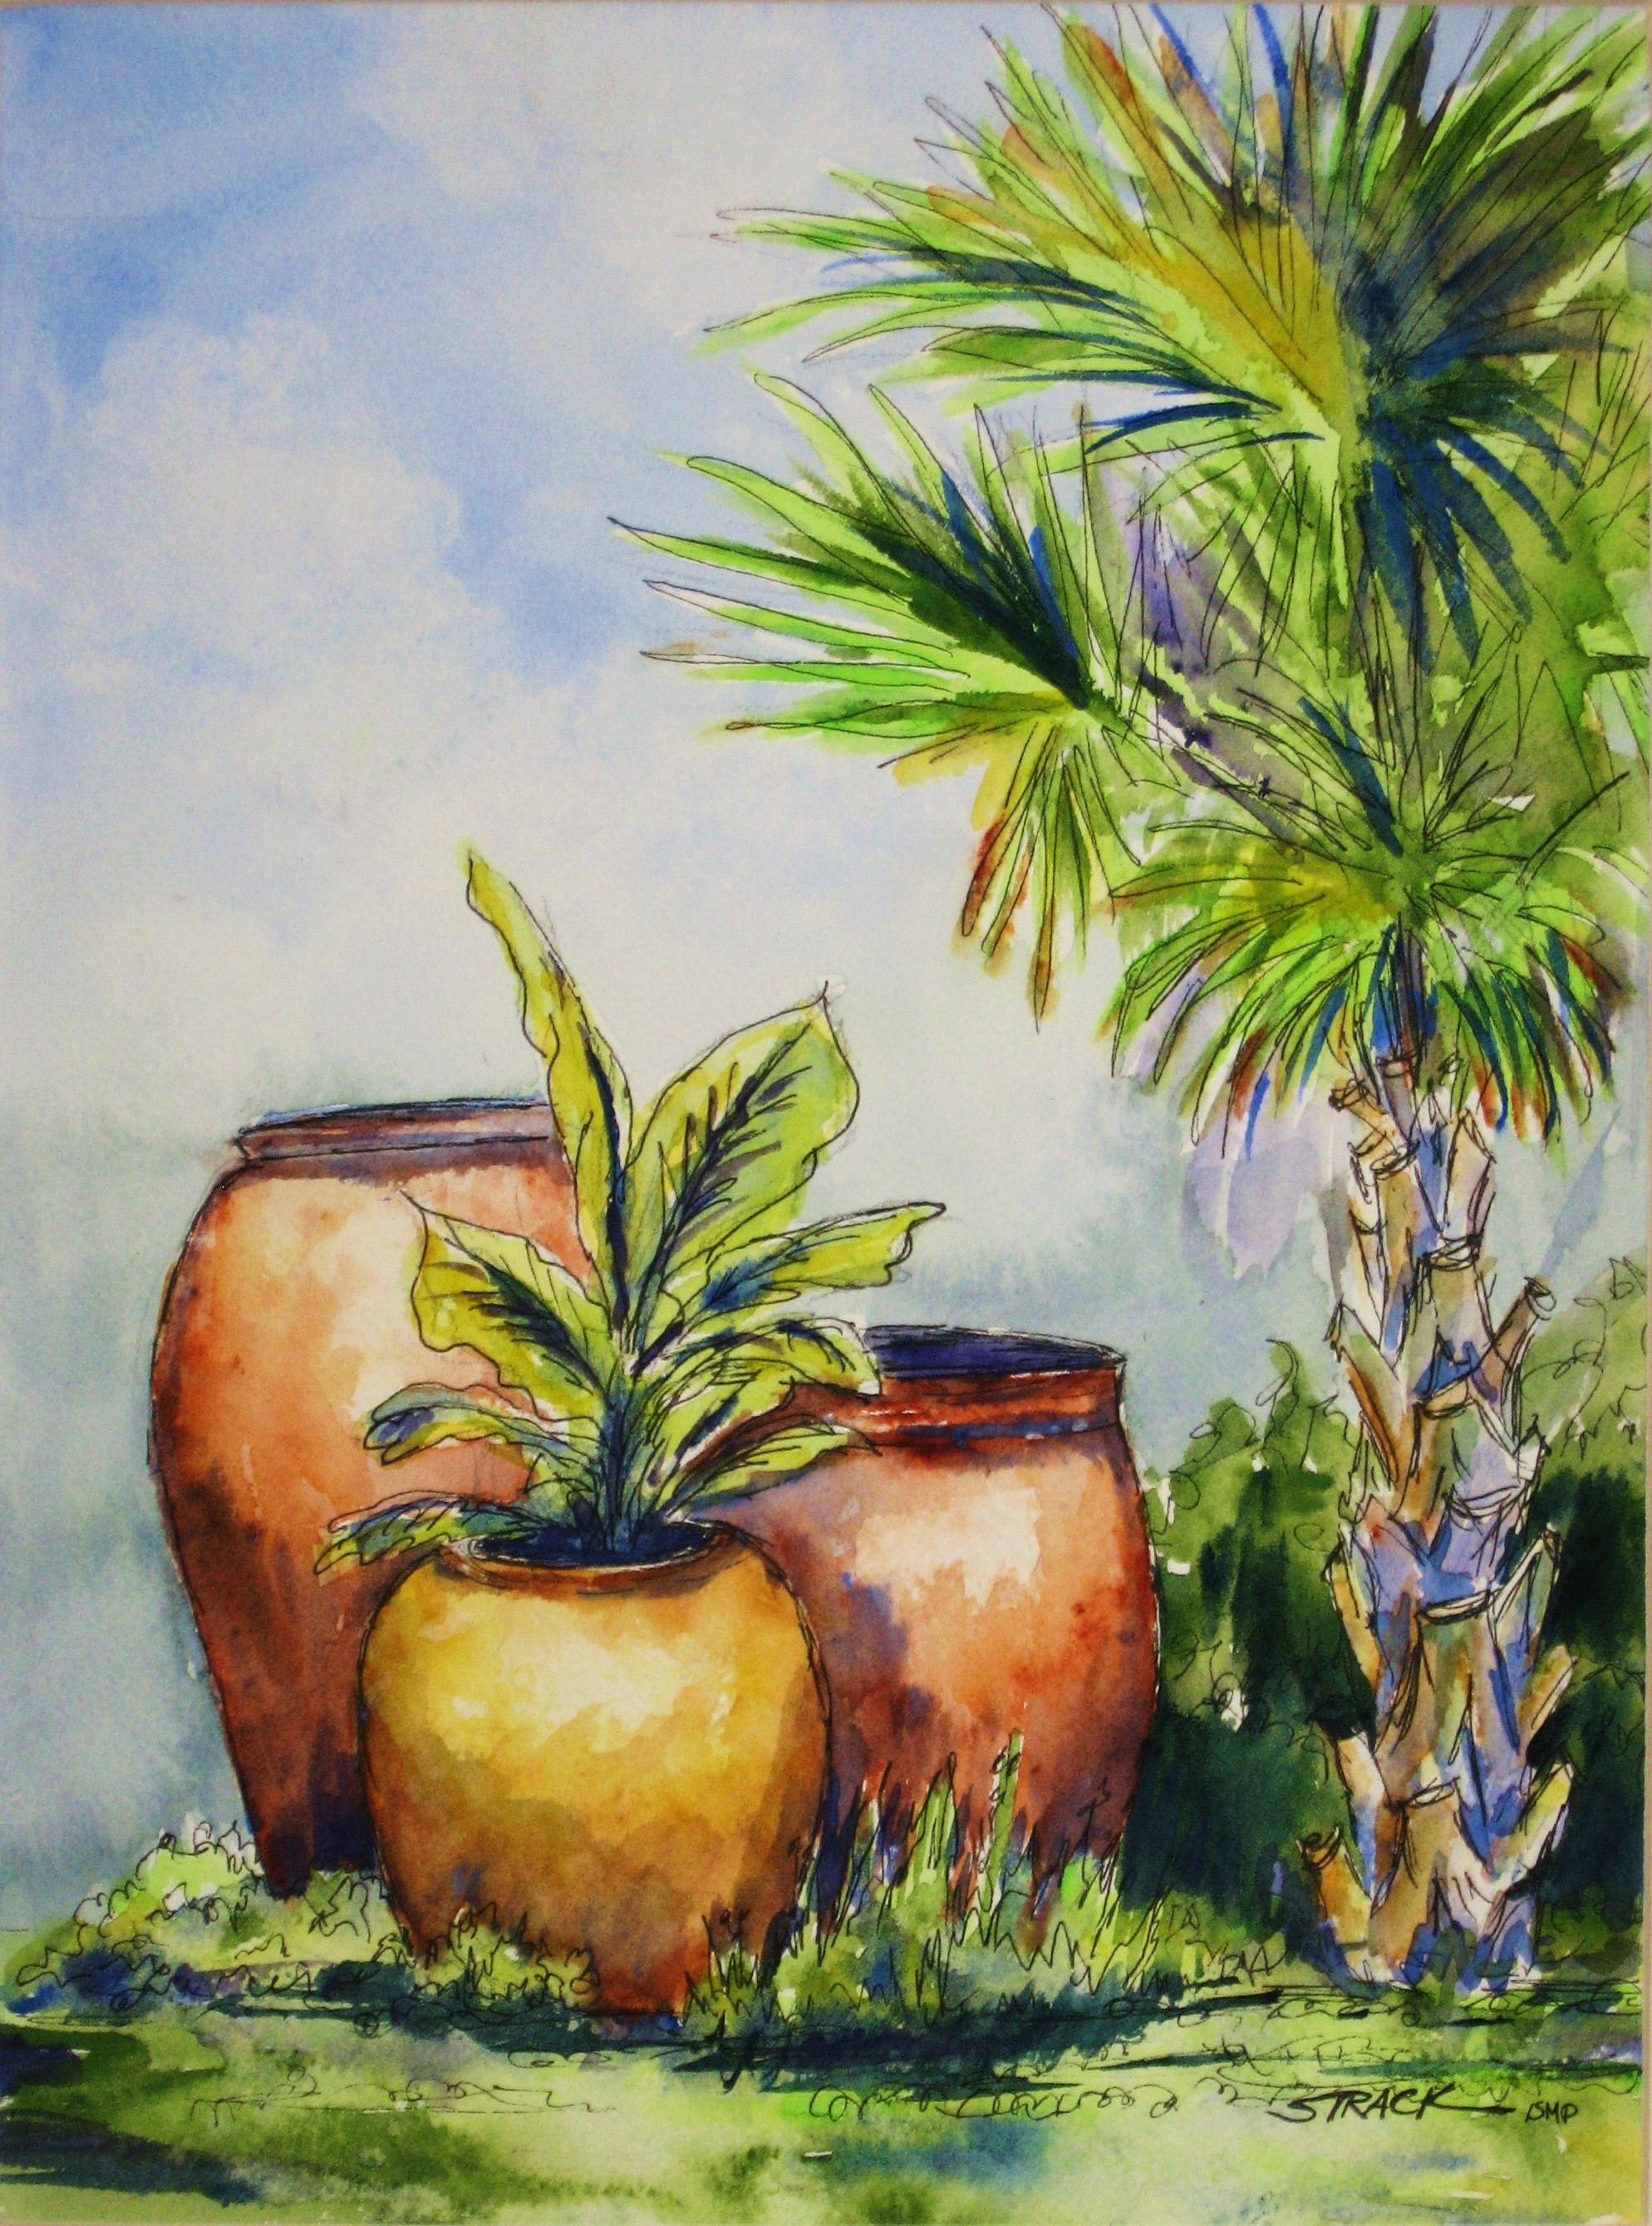 Claire's Garden by Annie Strack, watercolour with pen and ink